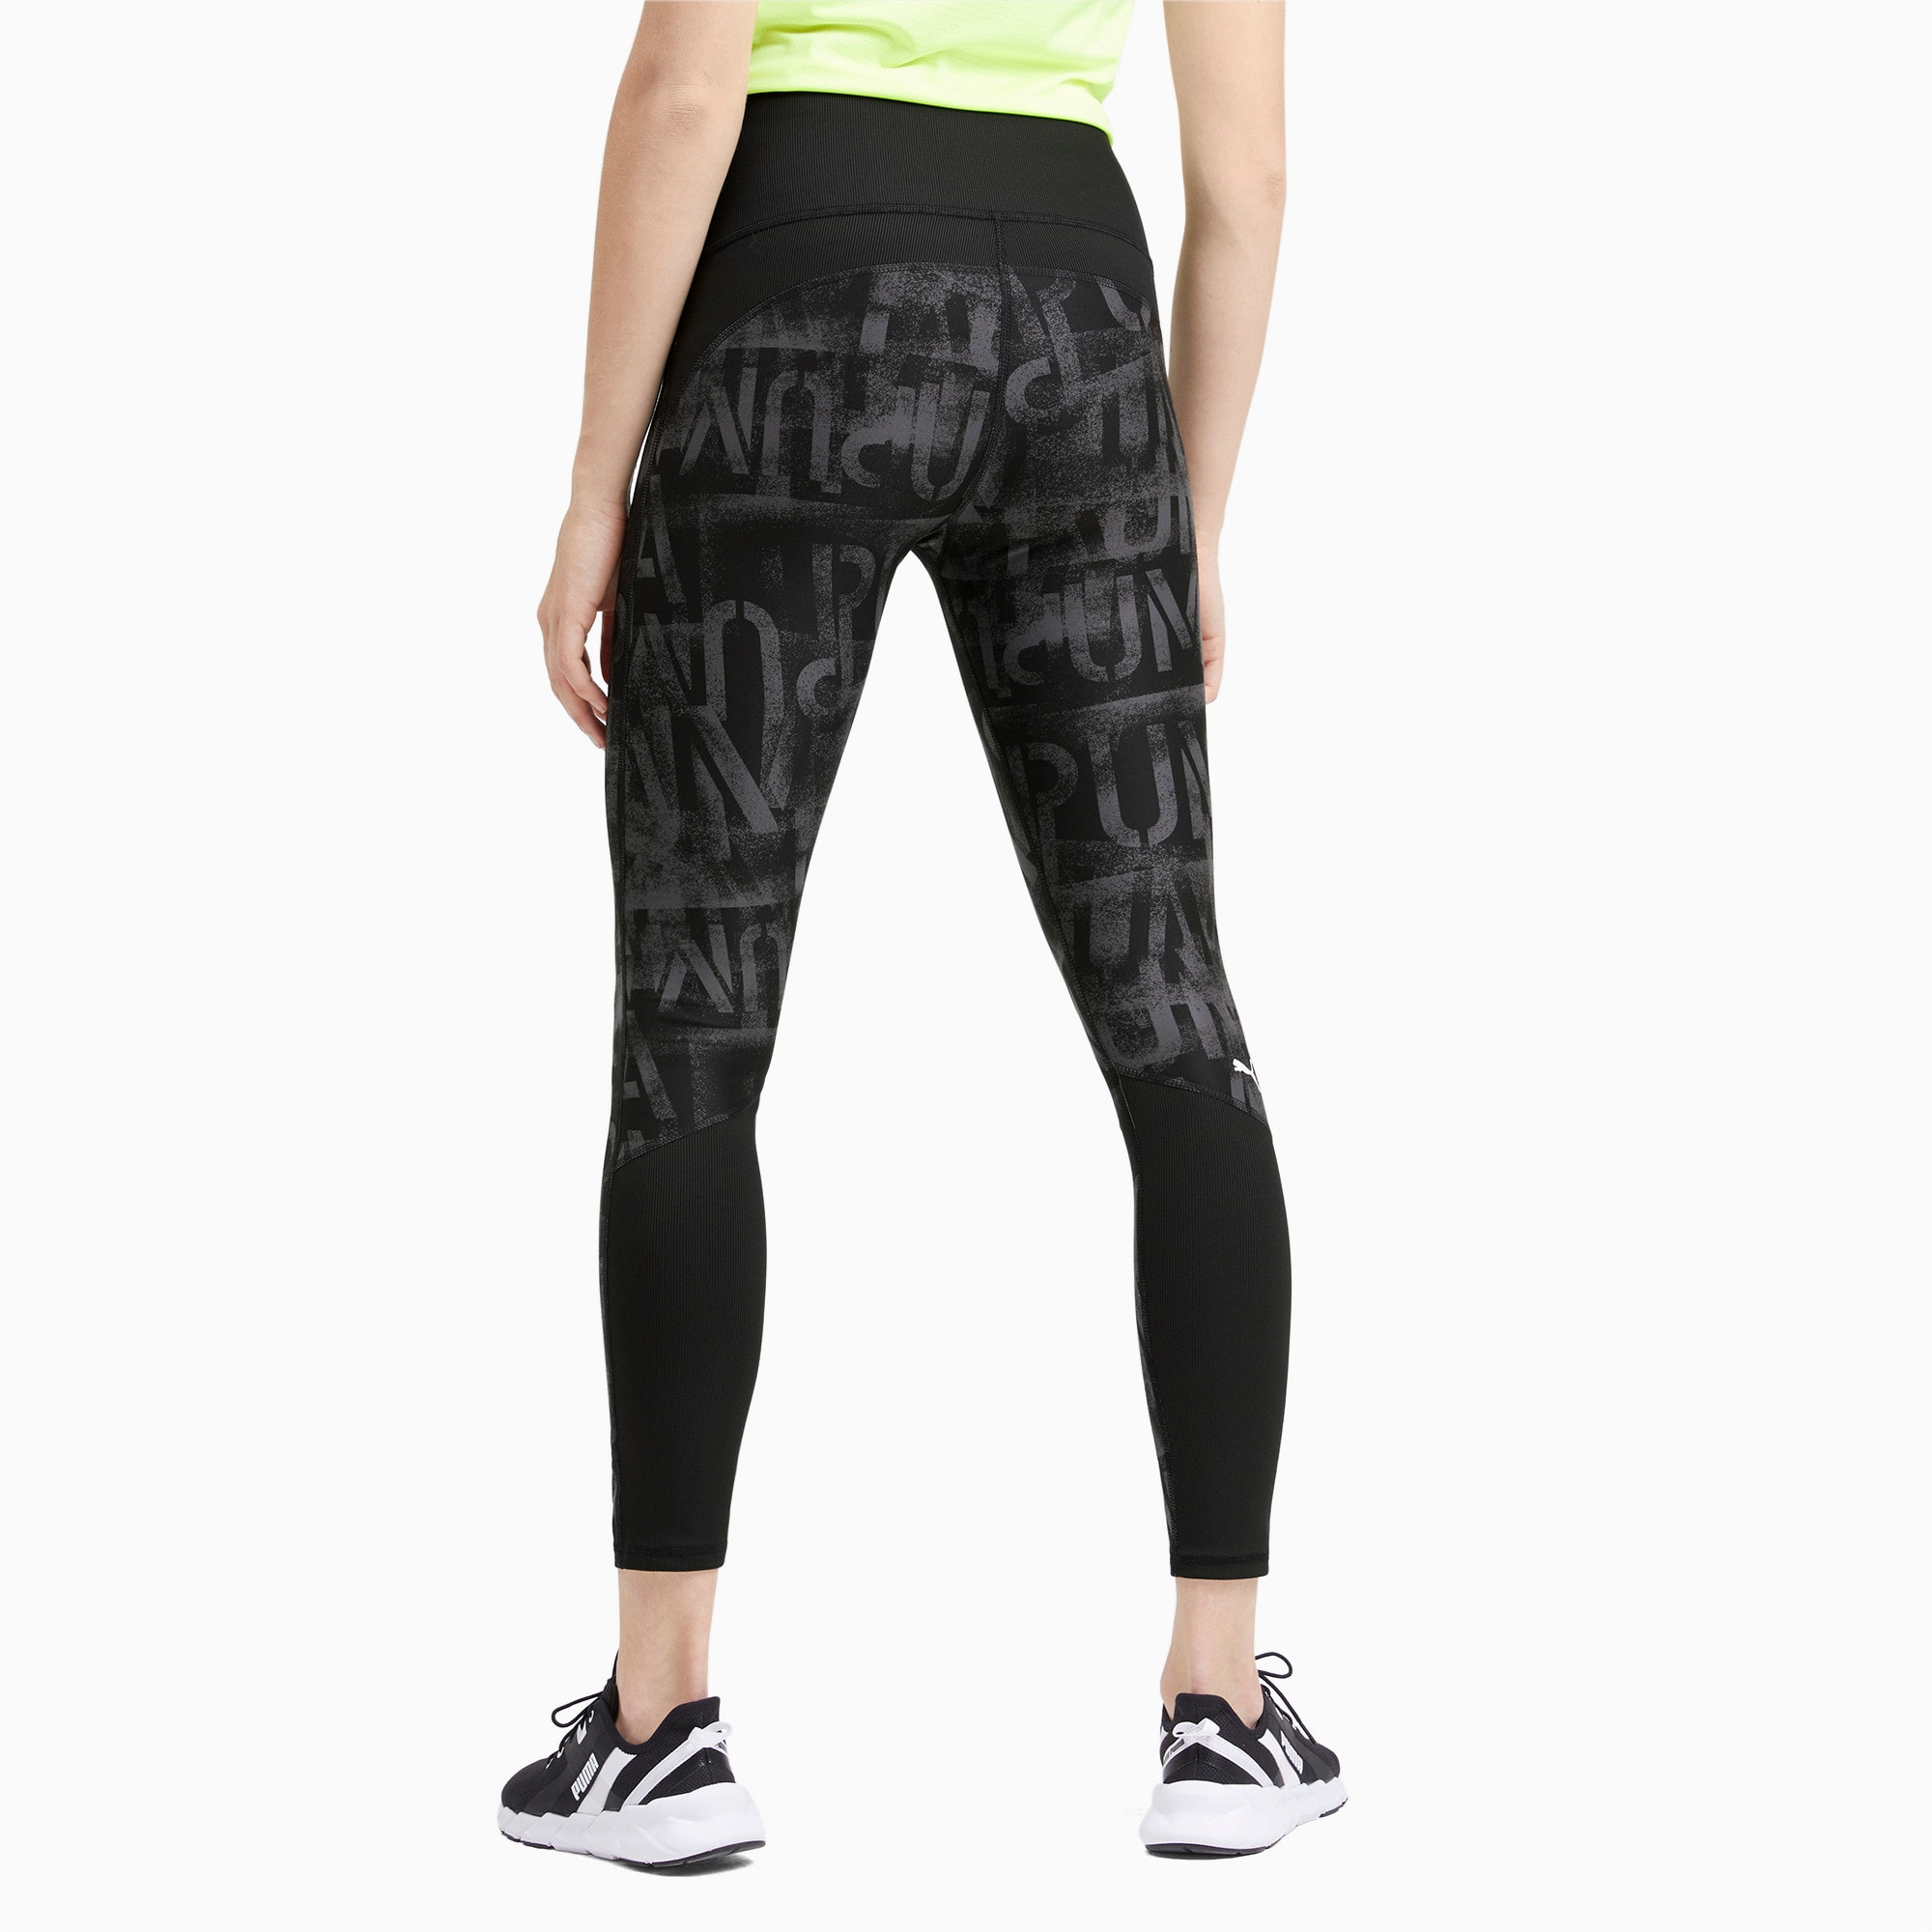 Studio Graphic Damen 7/8 Tight, Puma Black, large